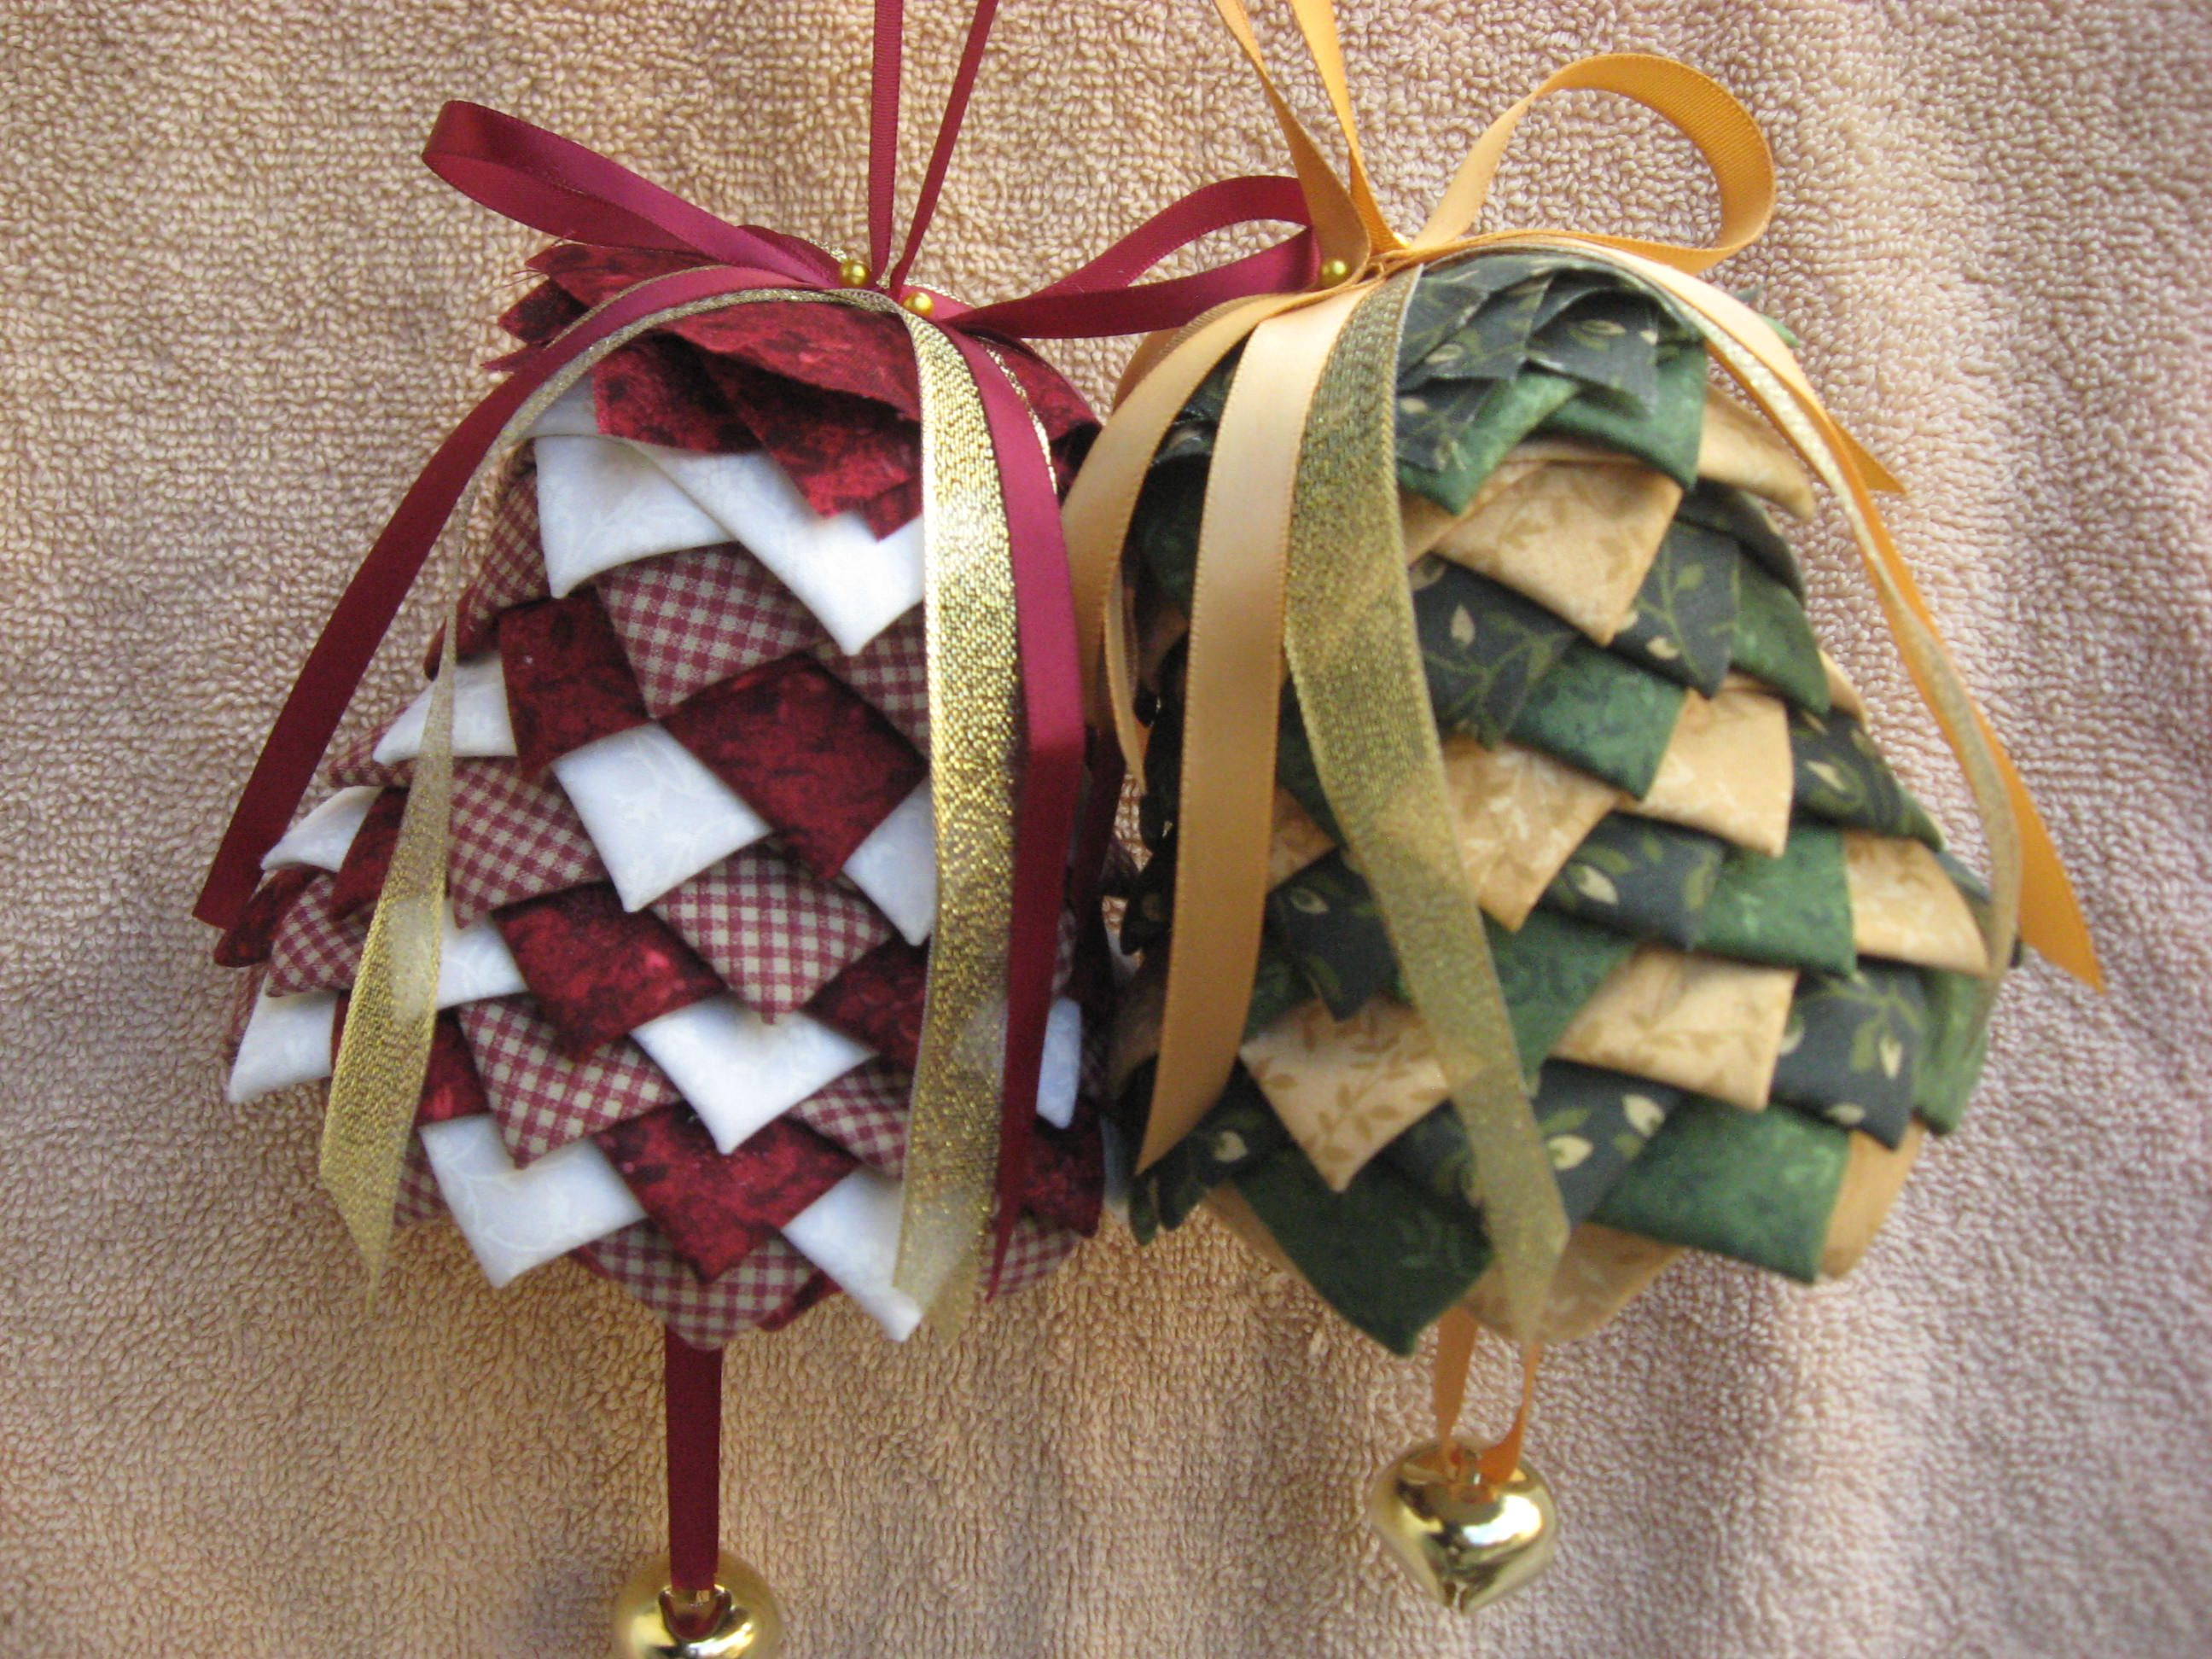 Folded fabric christmas ornaments patterns - Christmas Ornaments And Holiday Craft Decorations Easter 4th Of July Patriotic Valentines Day